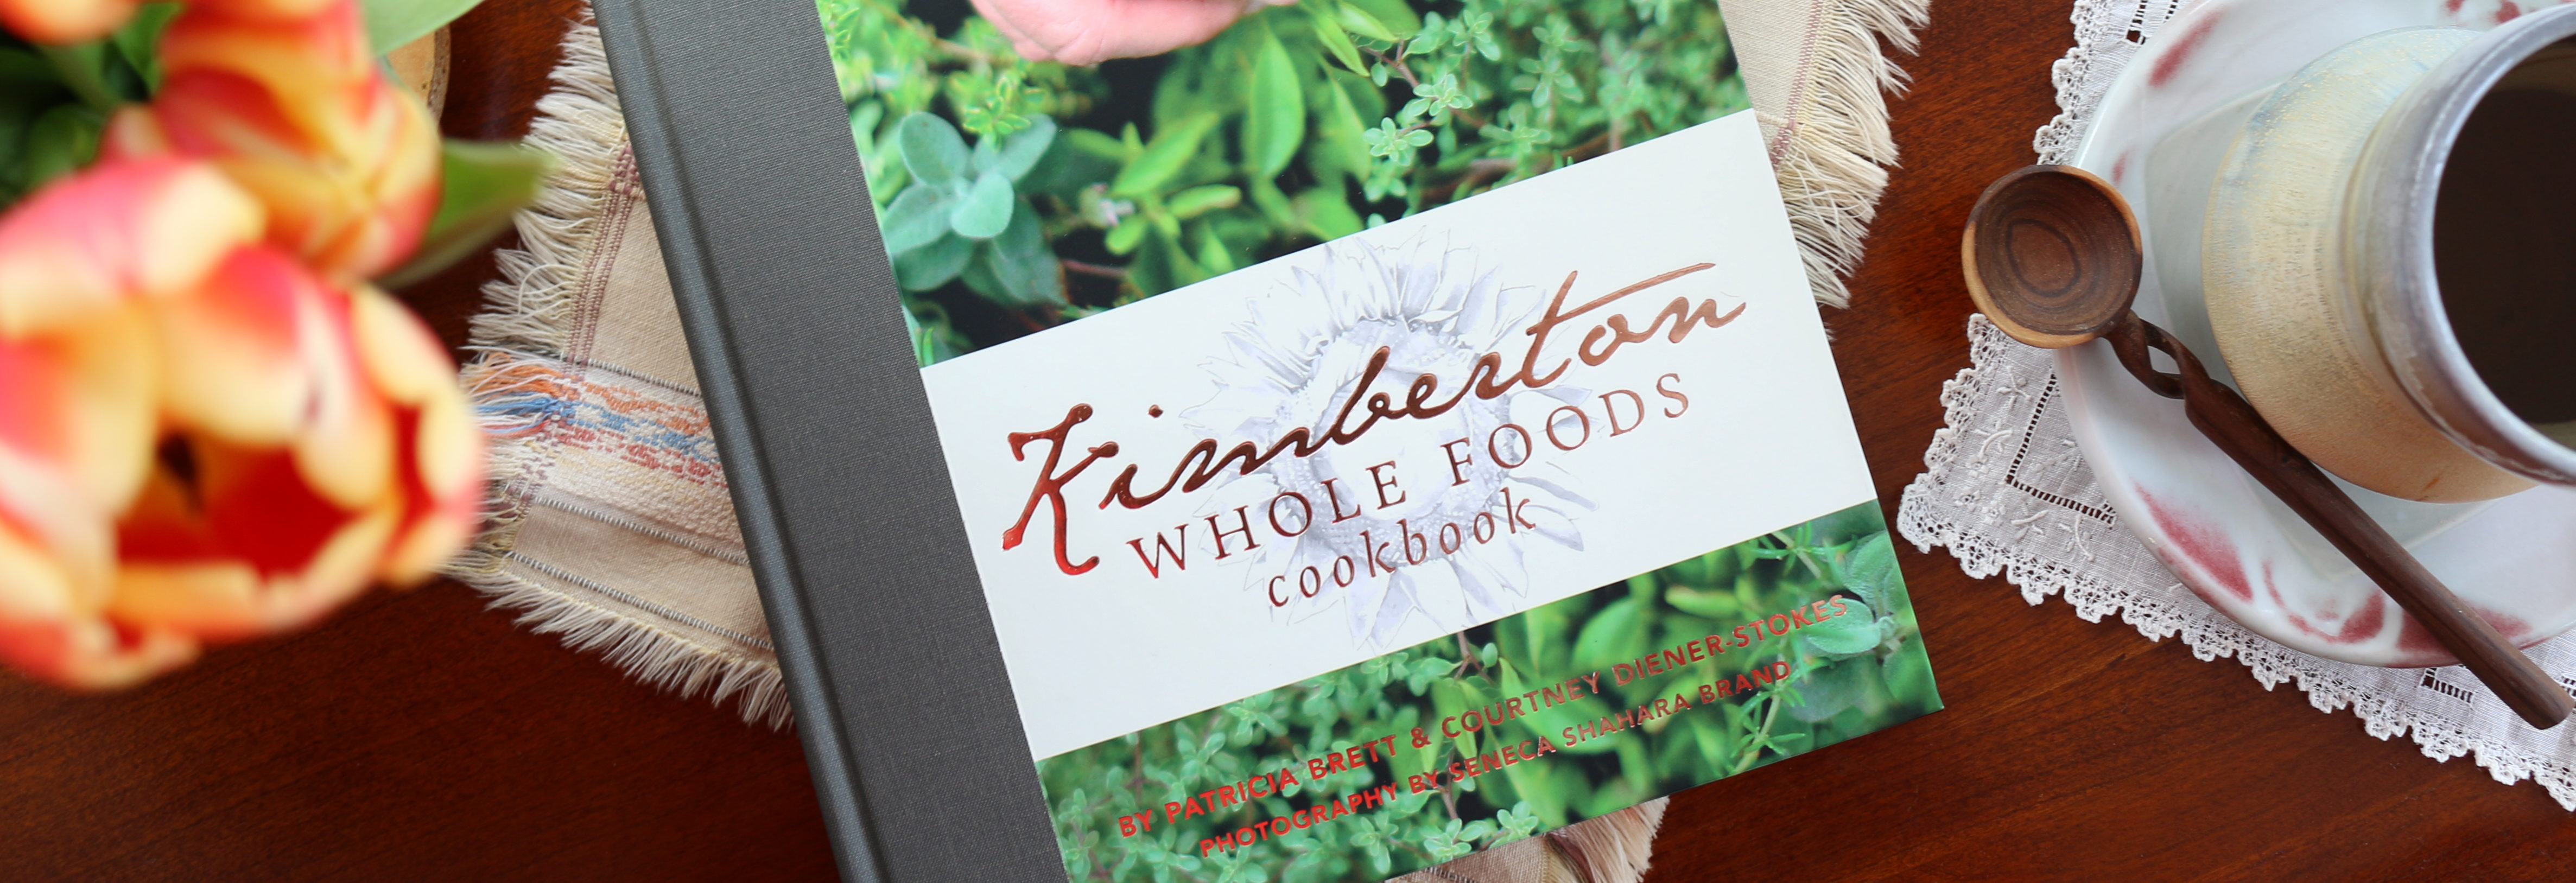 Kimberton Whole Foods Cookbook: A Family History with Recipes